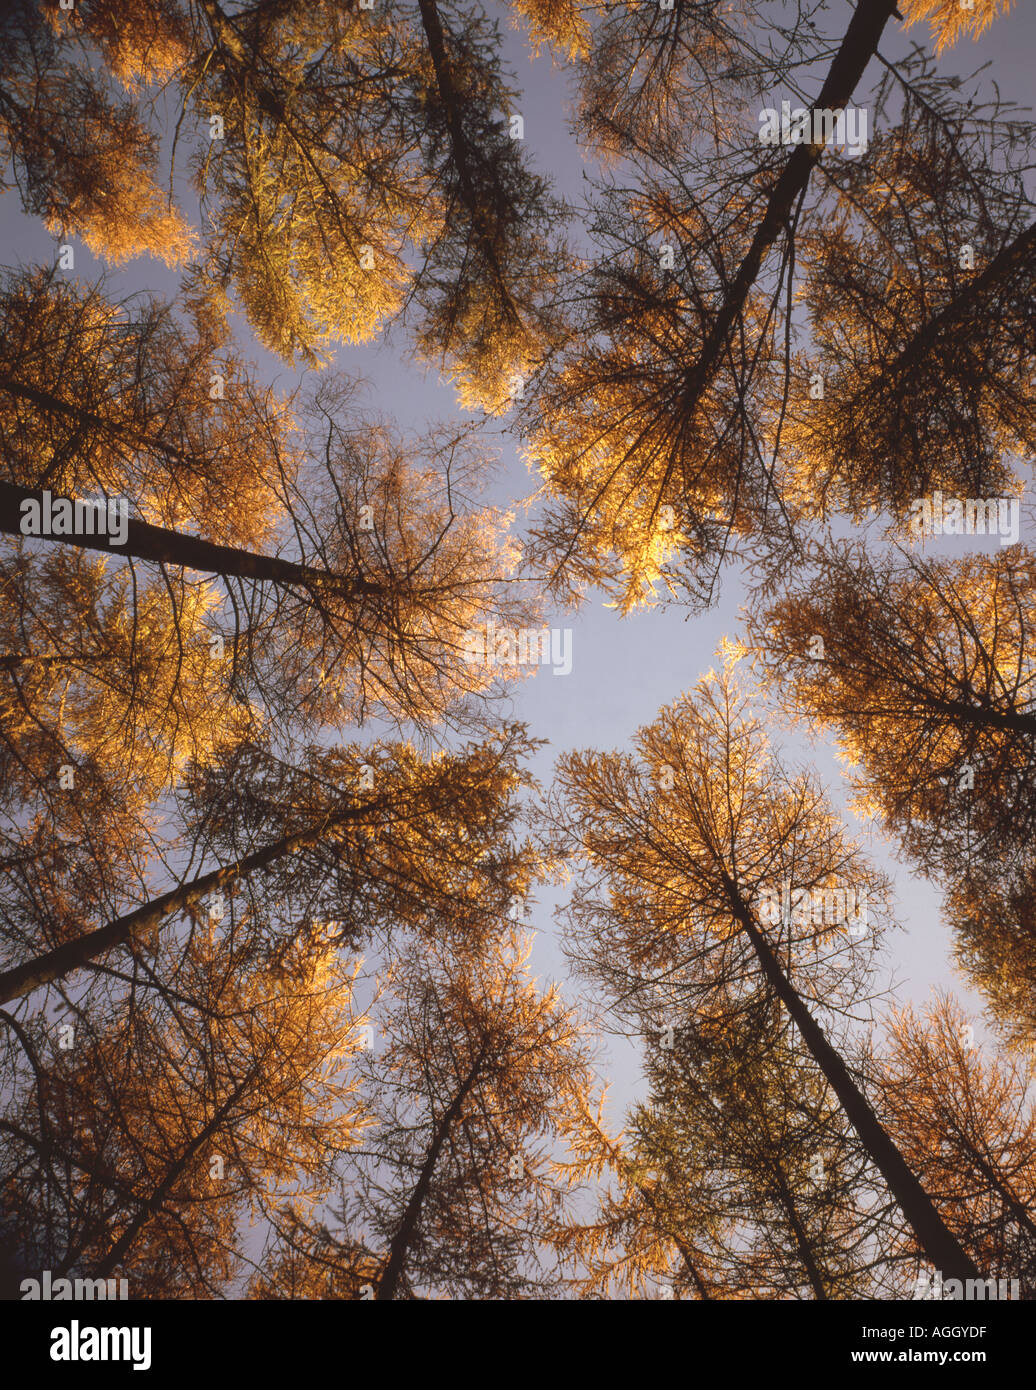 Autumn forest - Stock Image